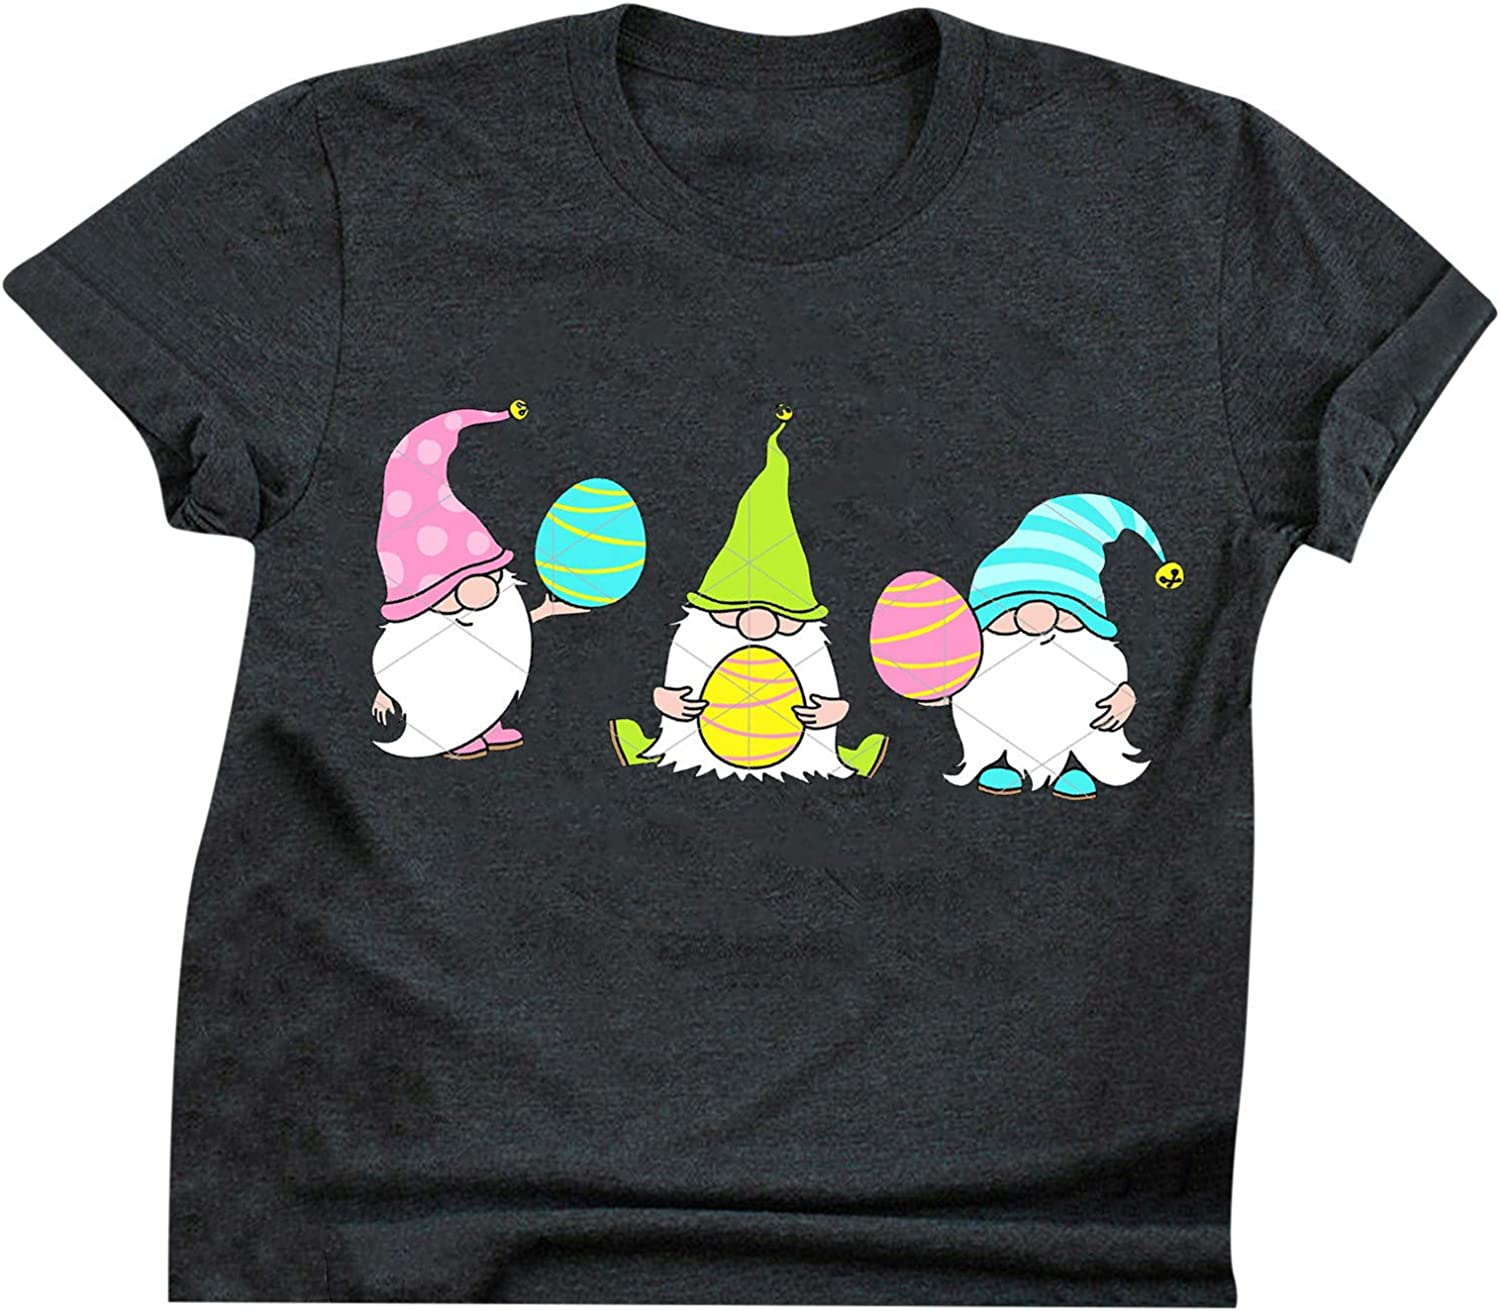 Cute Challenge the lowest price Tops for Women Short Sleeve Eggs Limited price sale Tees Graphic Gnomes Easter